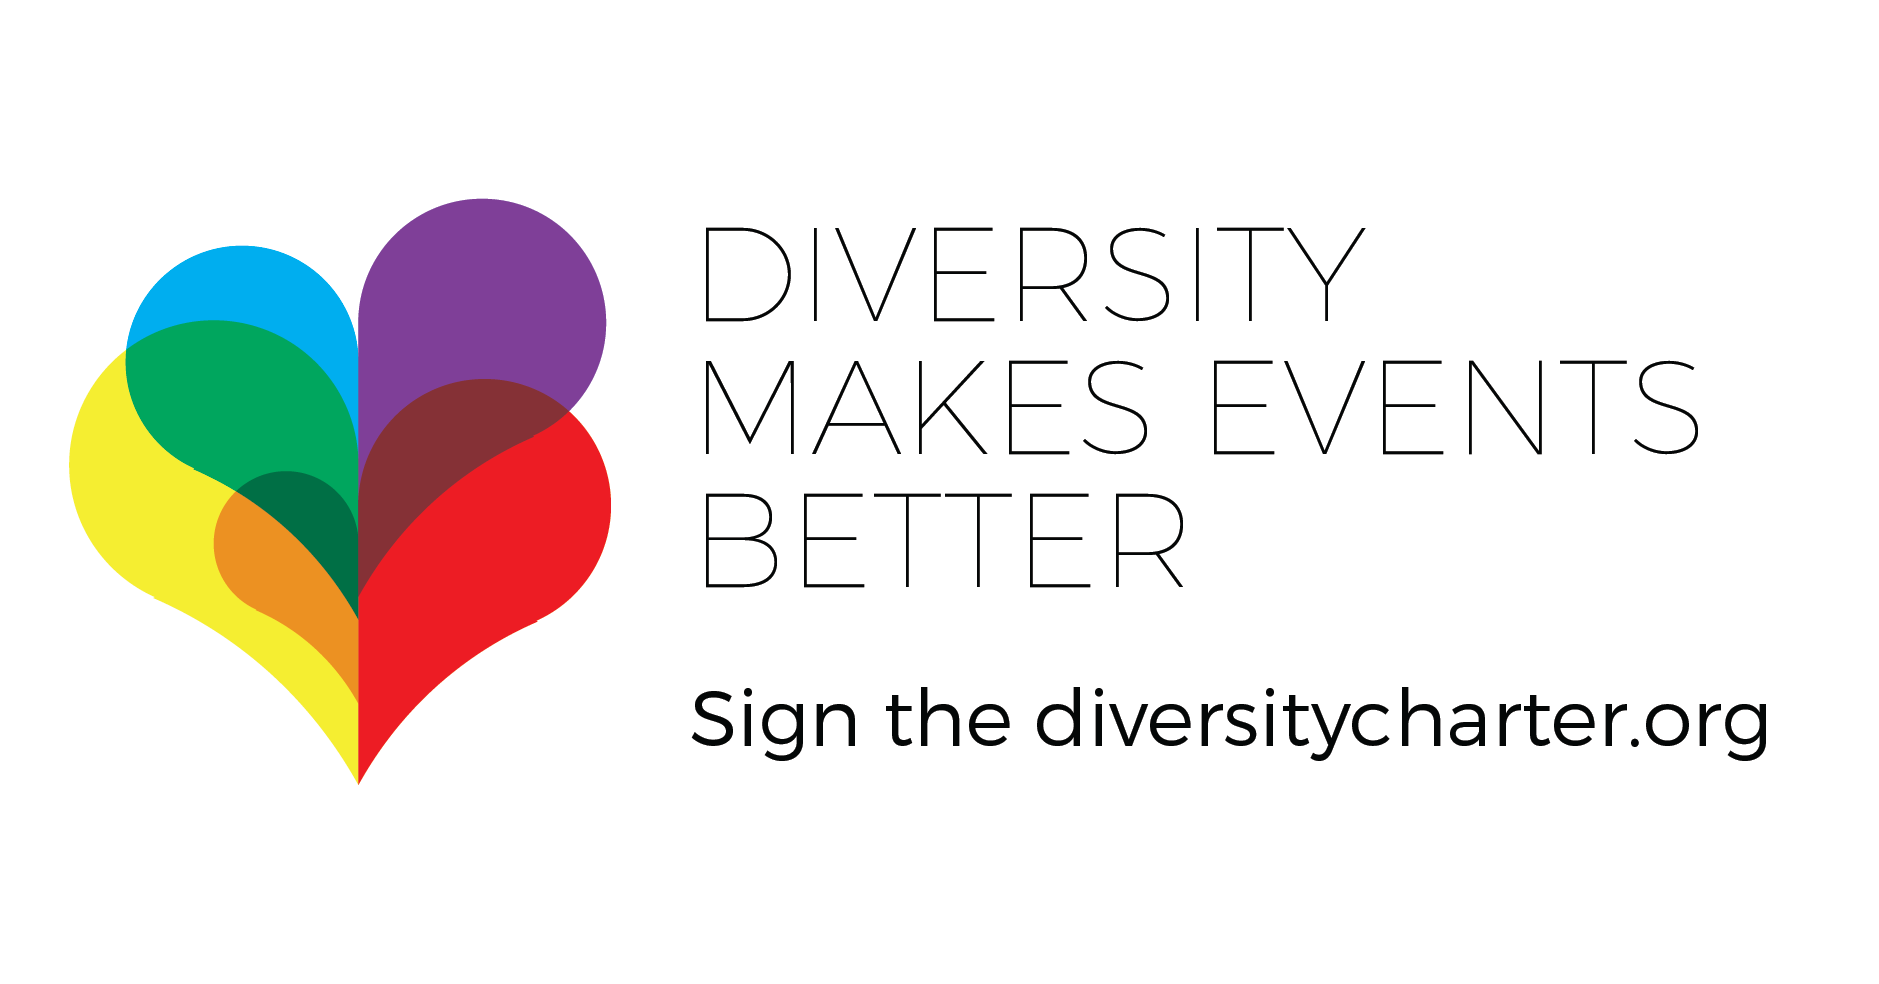 Diversity charter to promote diversity at conferences and events